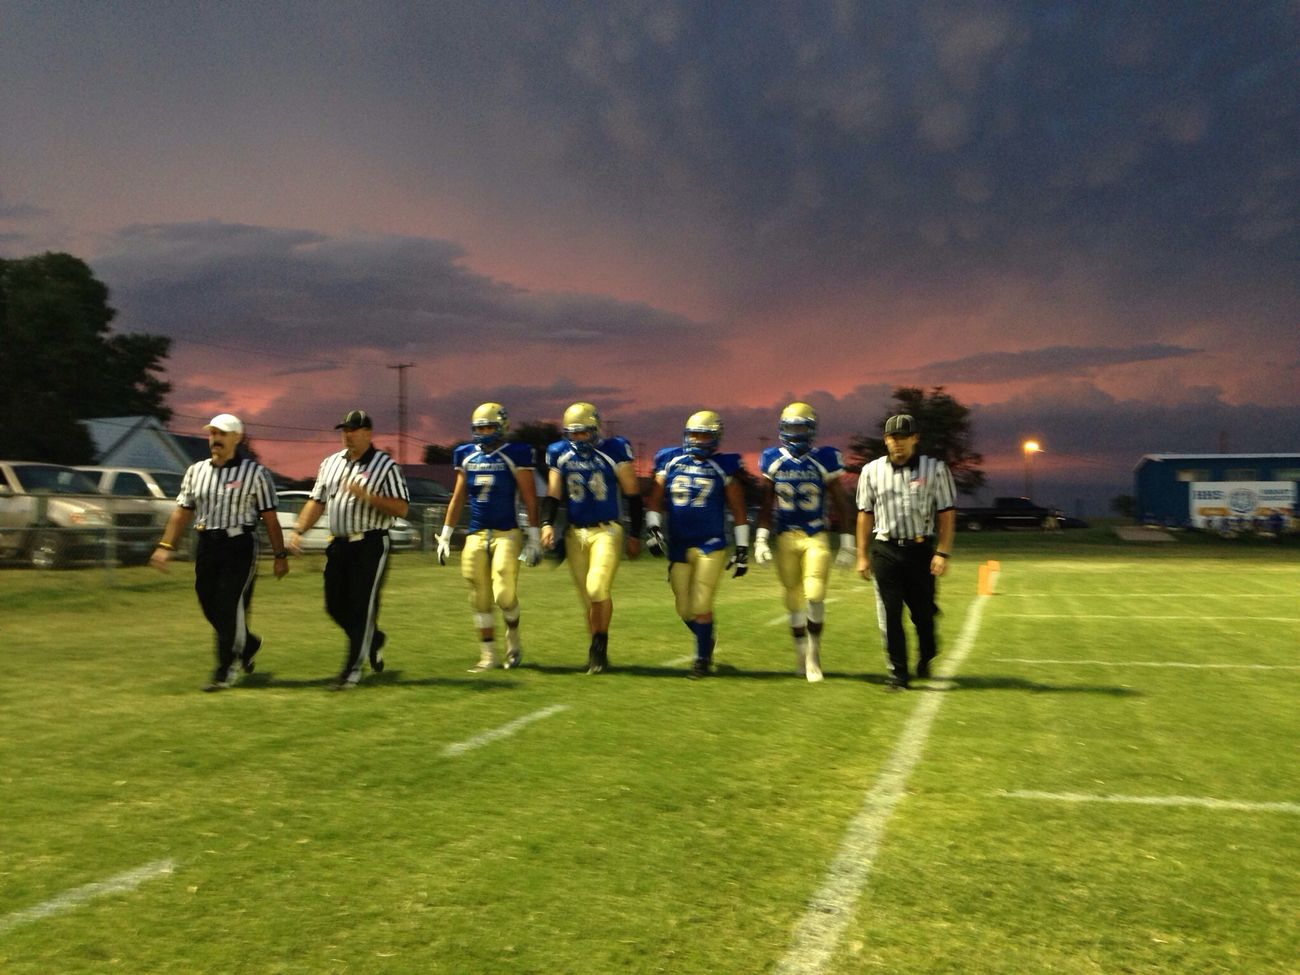 Football Under Them Friday Night Lights